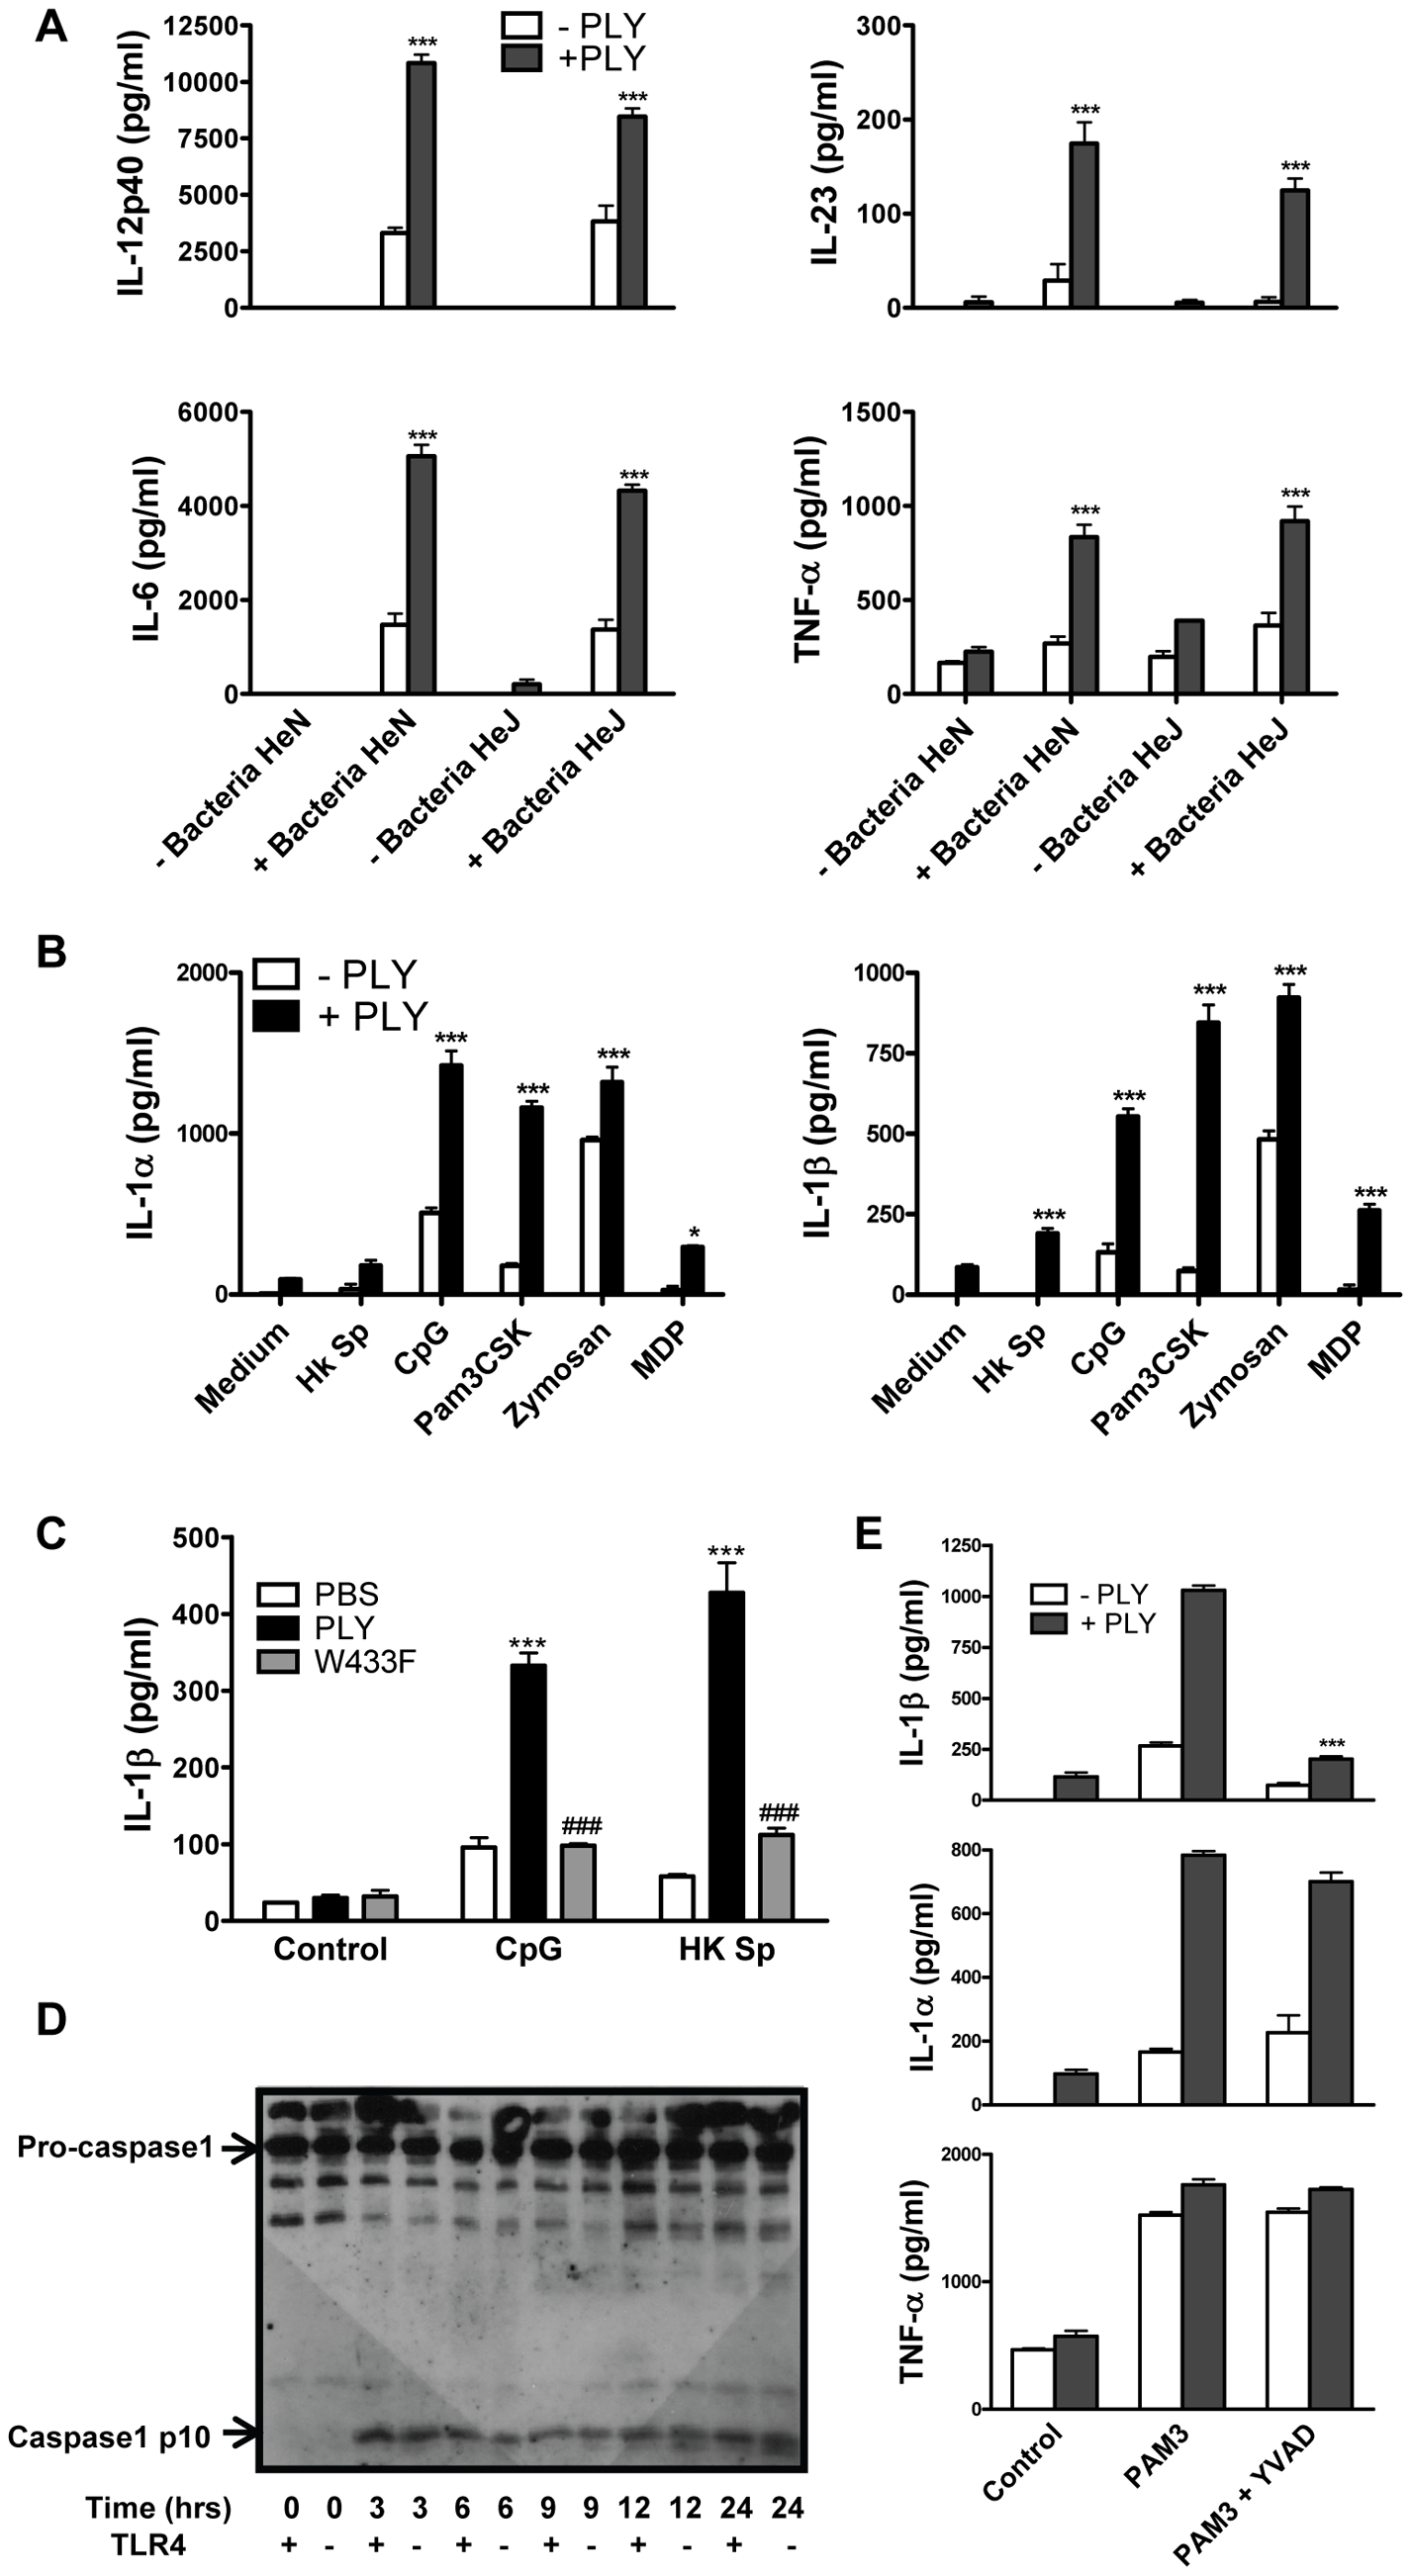 PLY synergizes with TLR agonists to enhance pro-inflammatory cytokine secretion by DC.